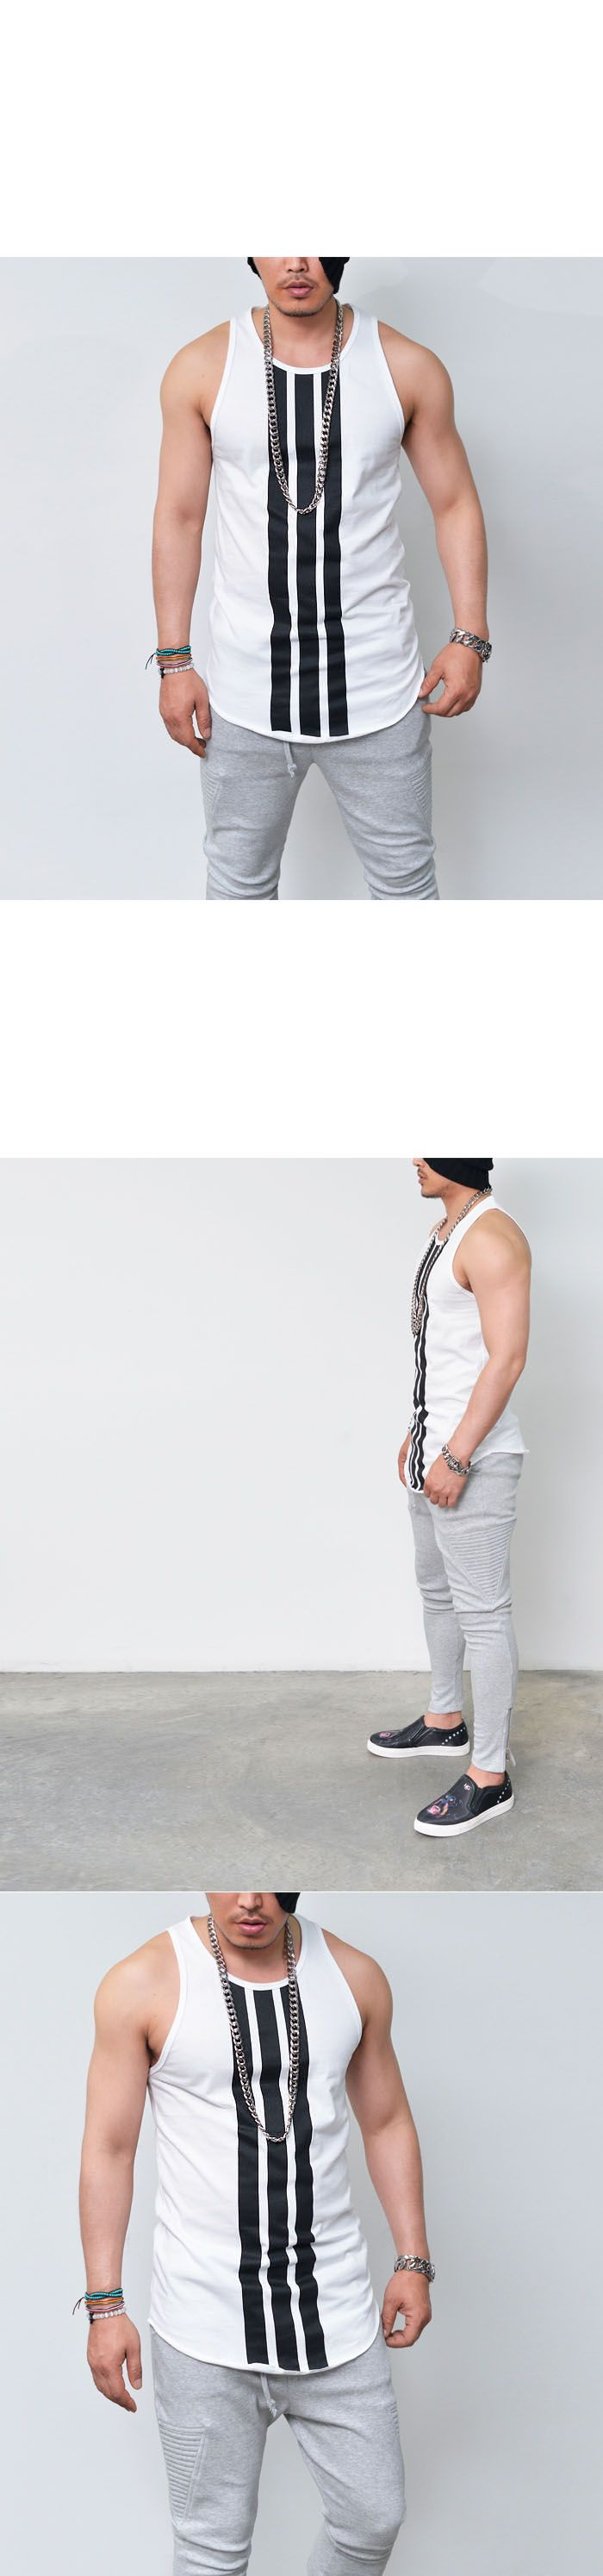 Tops :: Tanks :: Vertical Stripe Long Undershirt-Tank 115 - Mens Fashion Clothing For An Attractive Guy Look